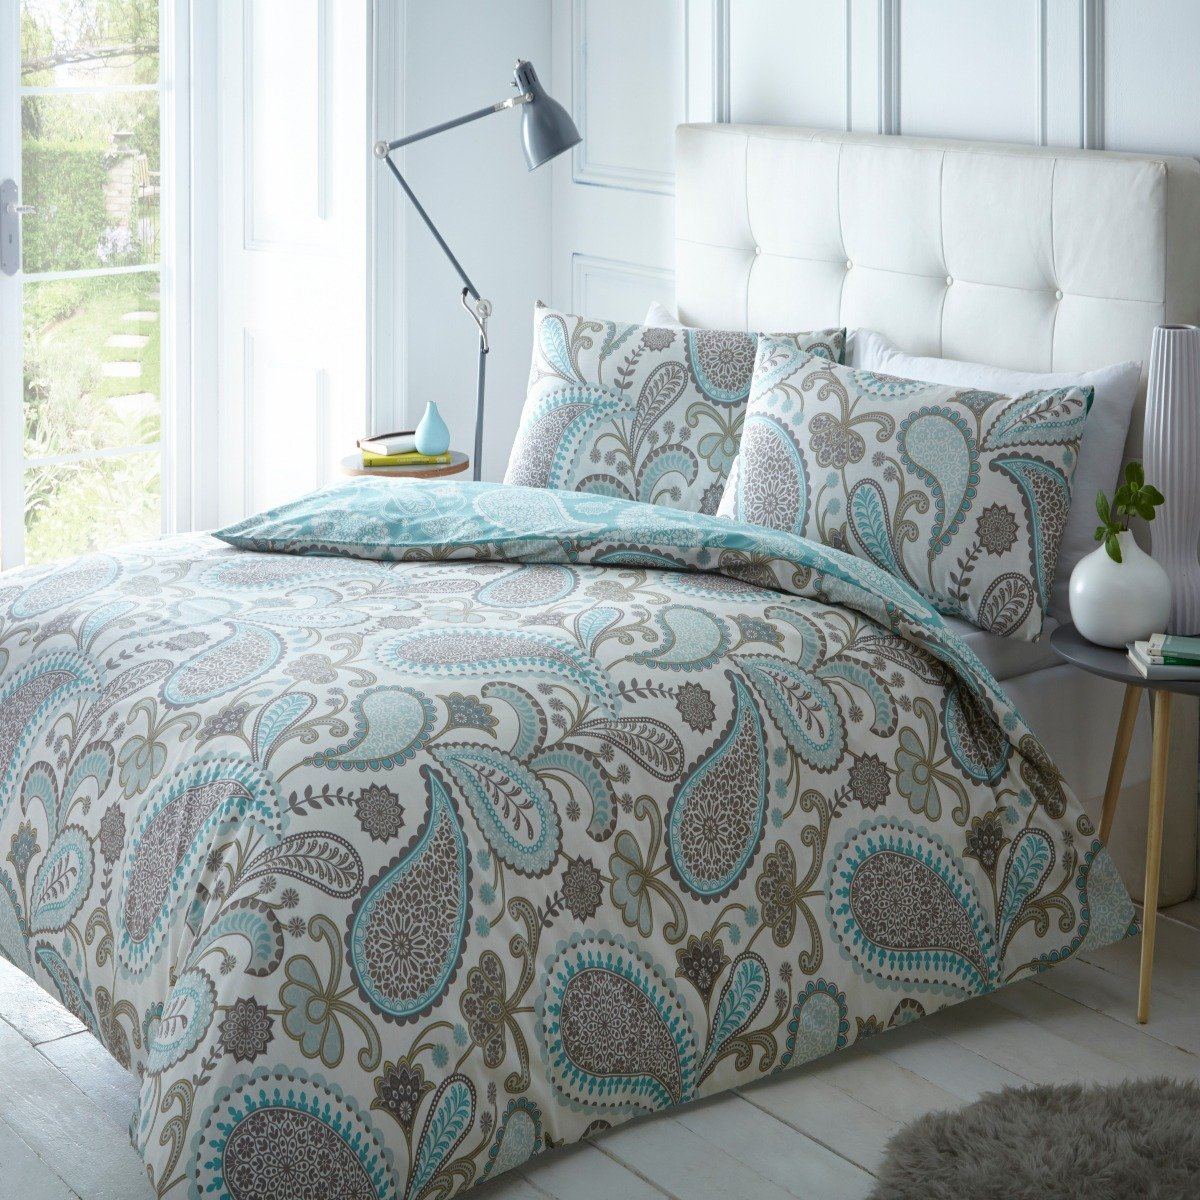 Paisley Teal Bedding - Reversible Duvet Cover and Pillowcase Set